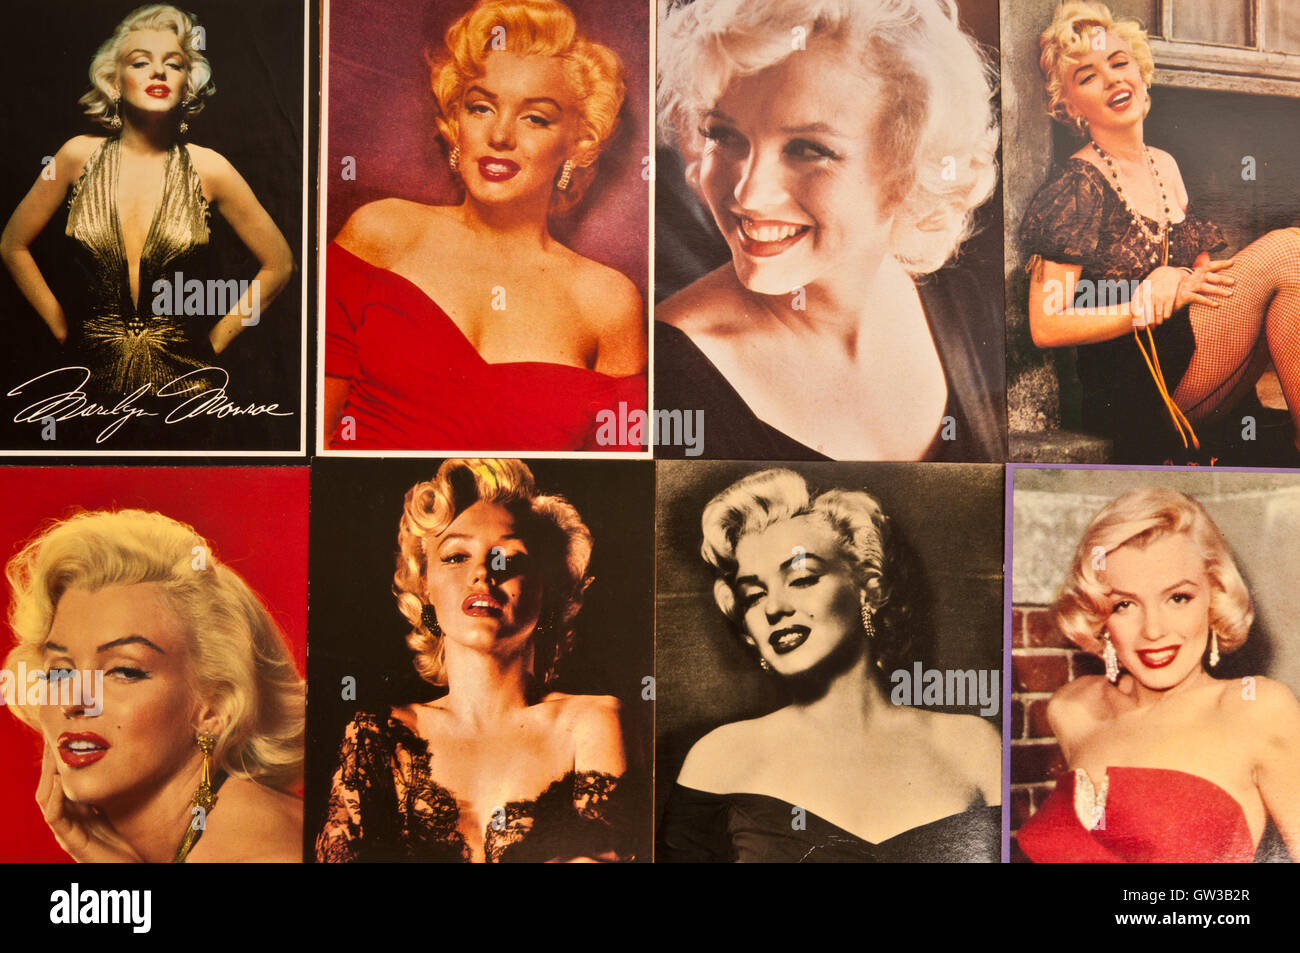 Marilyn Monroe - Stock Image